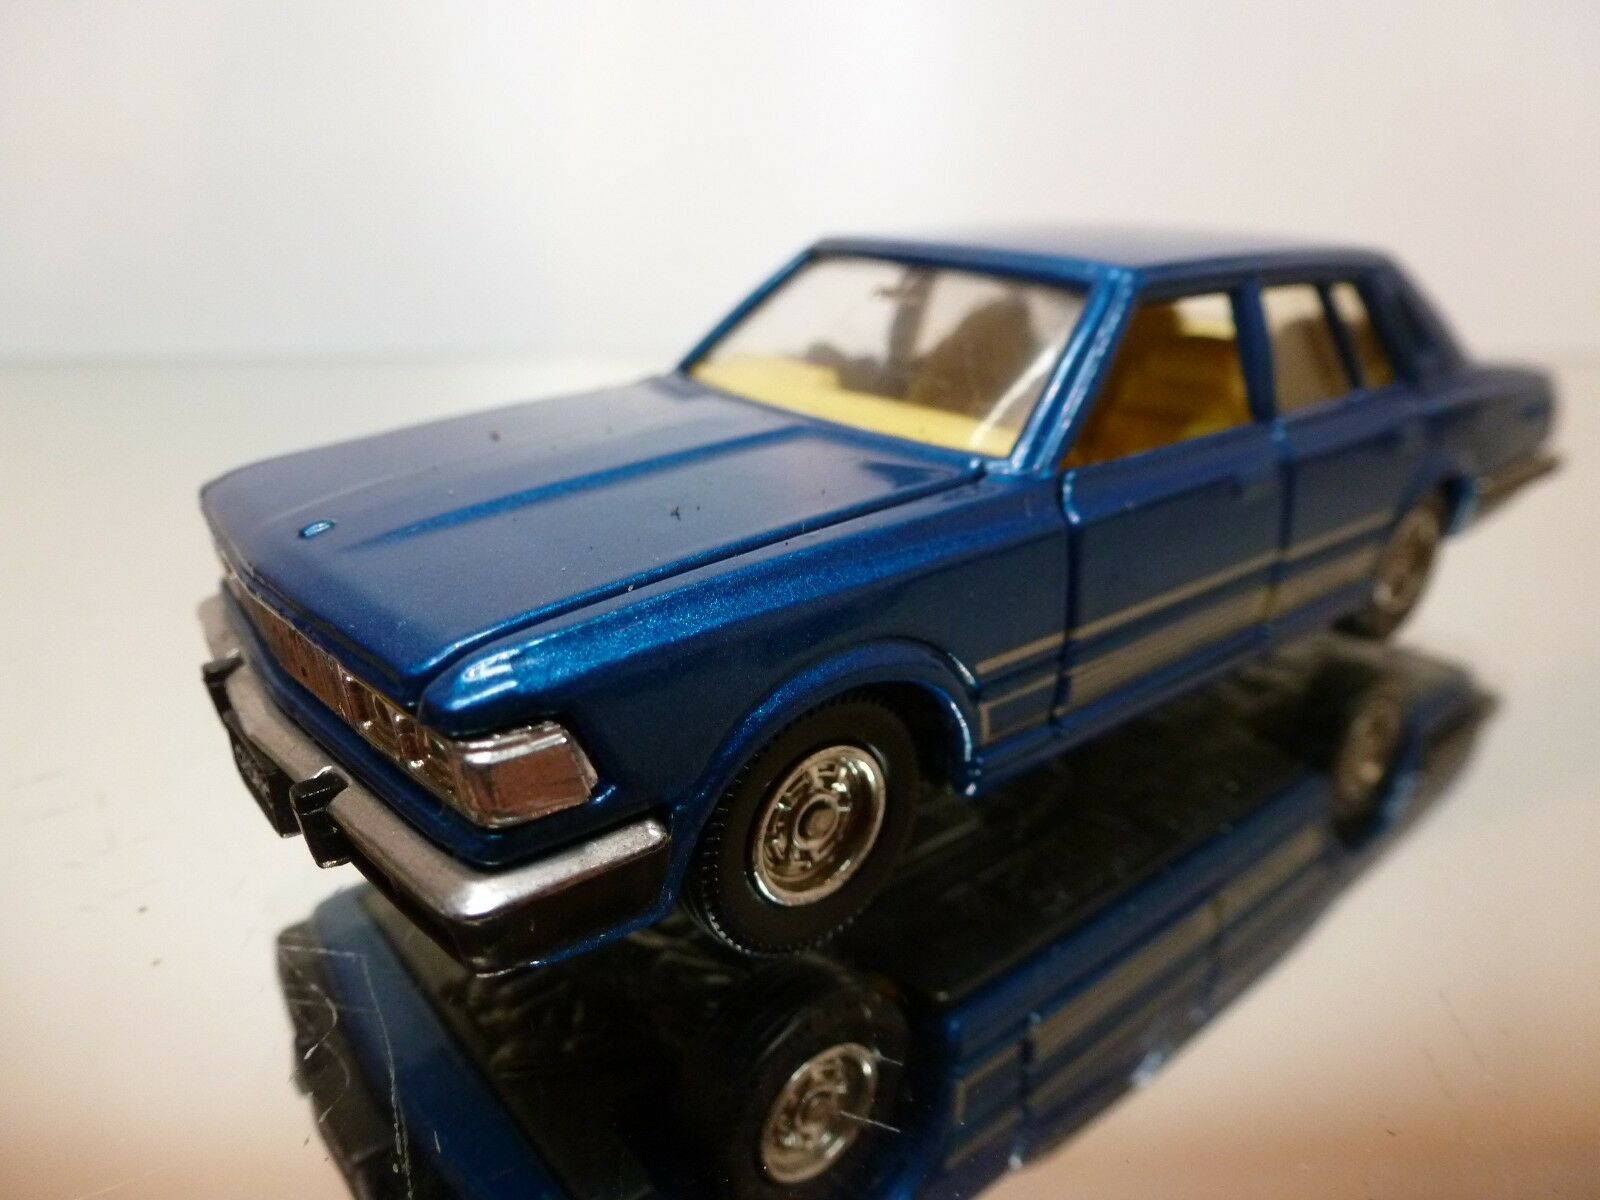 TOMICA 1 43 - NISSAN CEDRIC 280E NR= 11 - EXCELLENT CONDITION-9+6